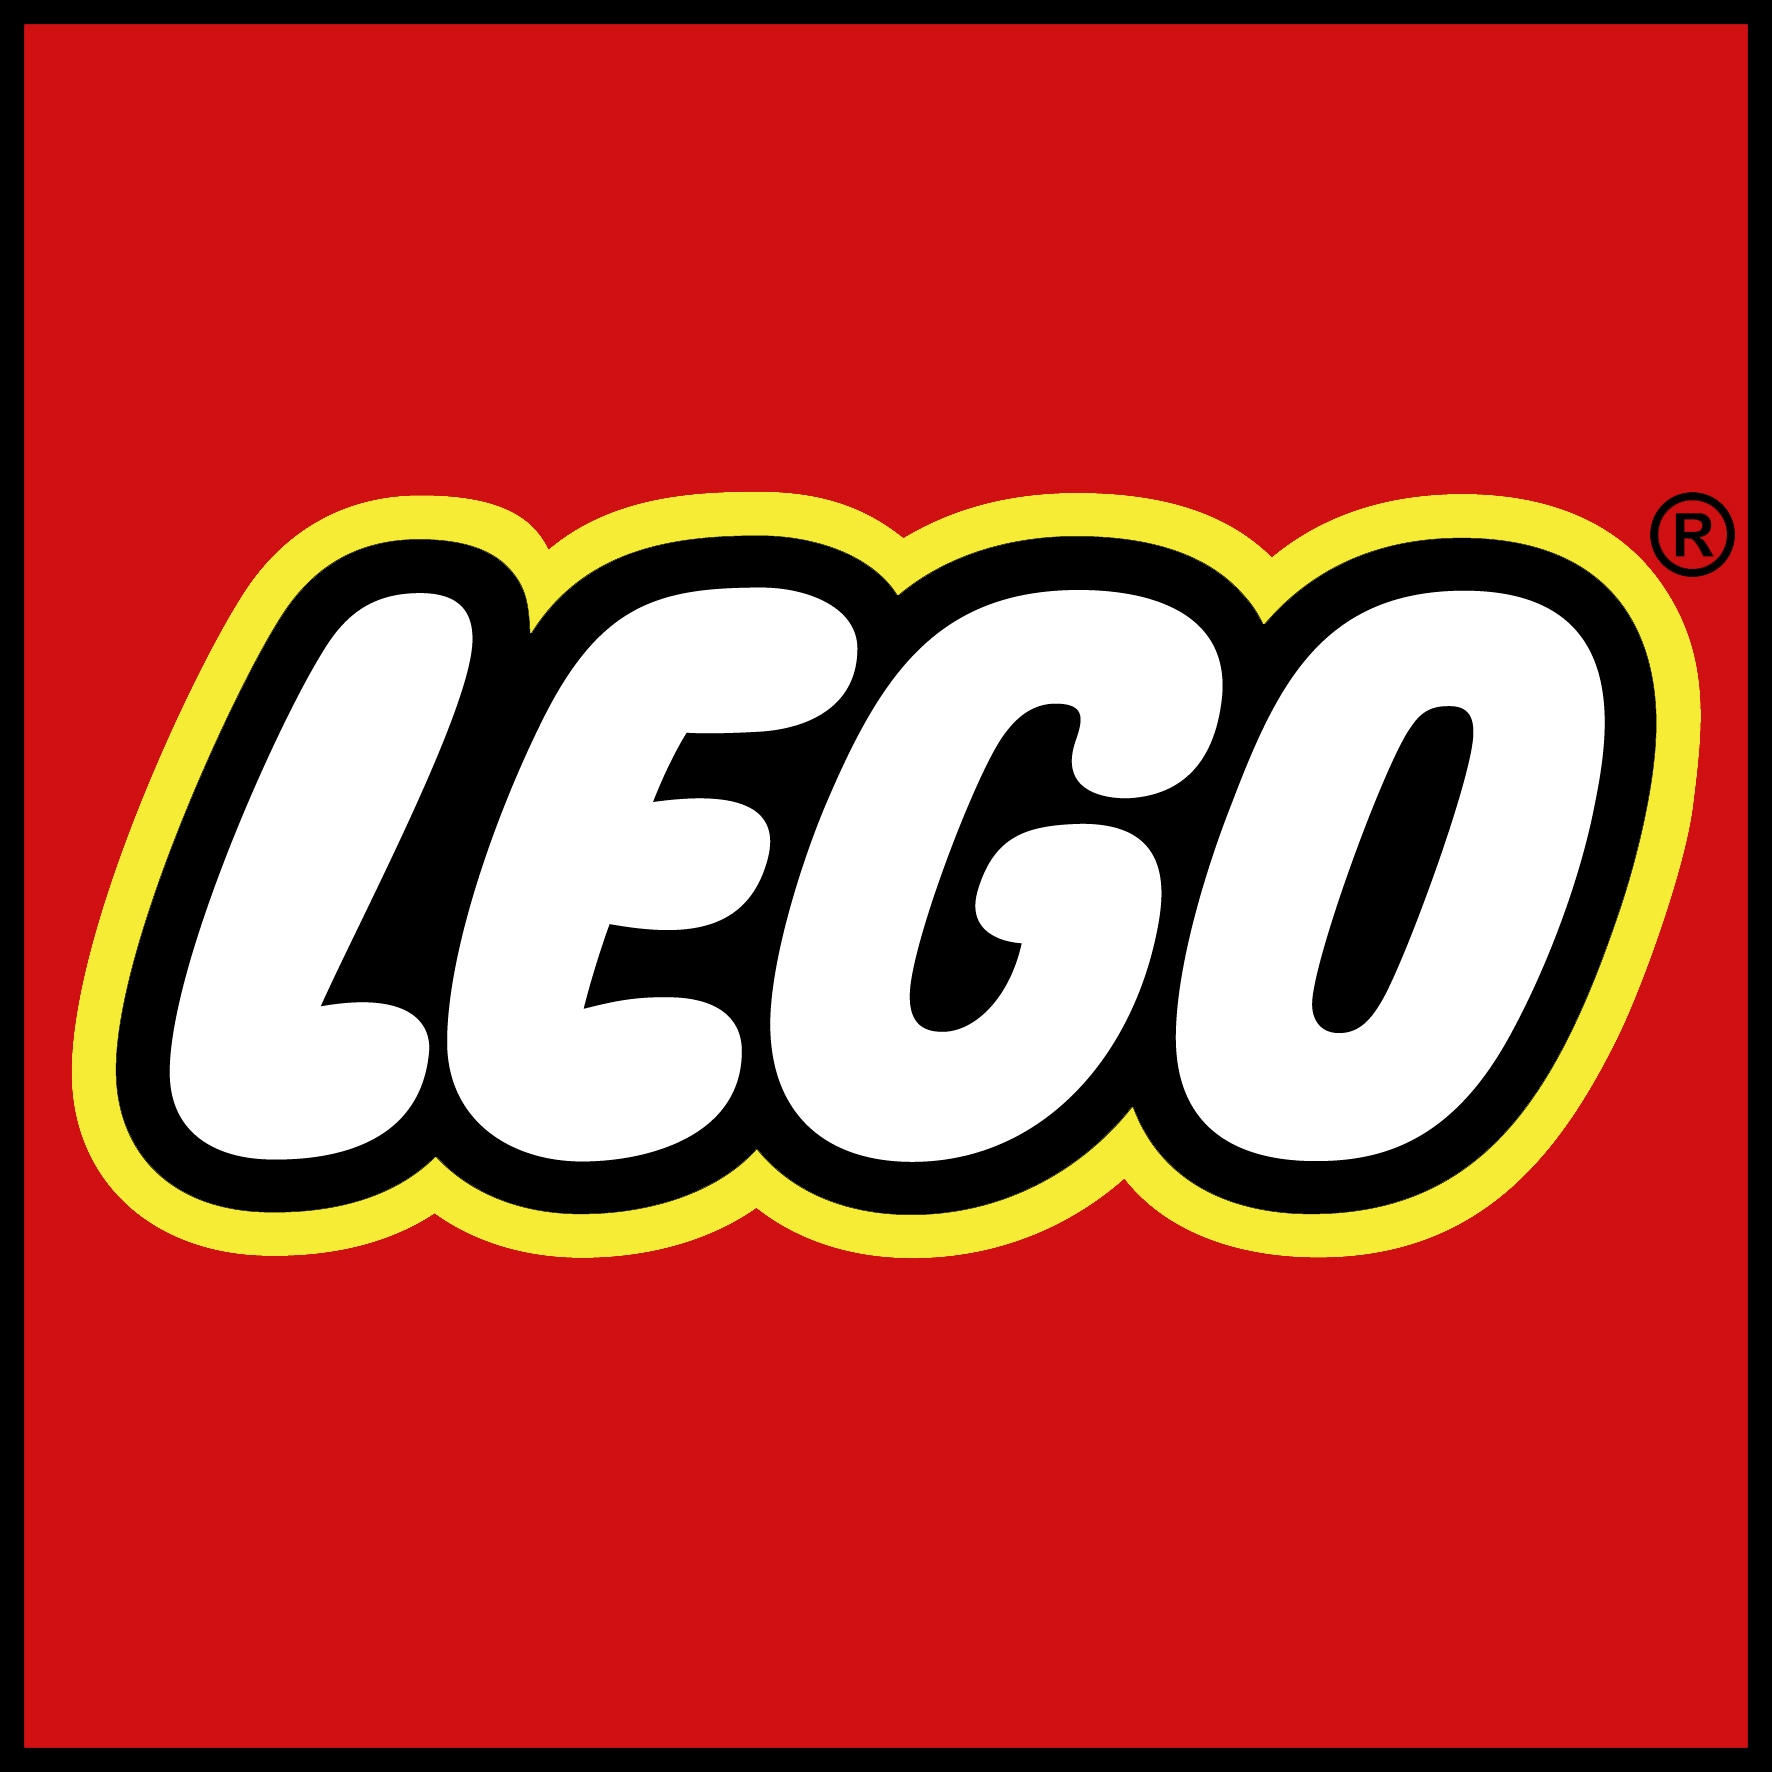 http://images2.wikia.nocookie.net/__cb20130601154046/lego/images/2/2d/LEGO_logo.jpg